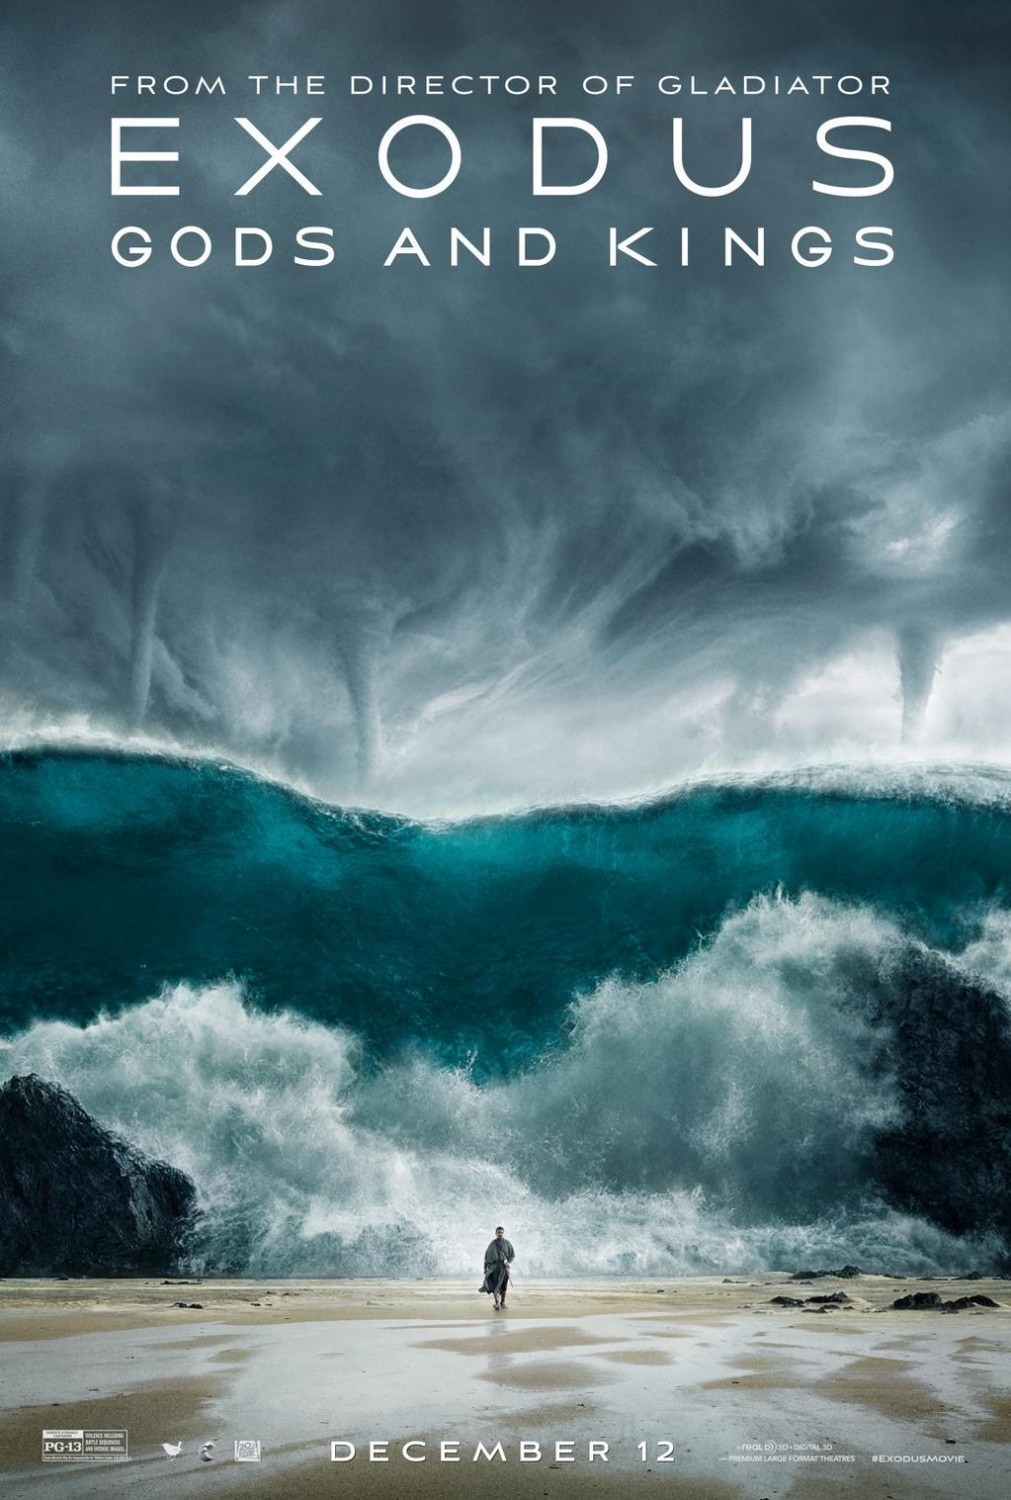 EXODUS GODS AND KINGS-PROMO XXLG-11NOVEMBRO2014-01